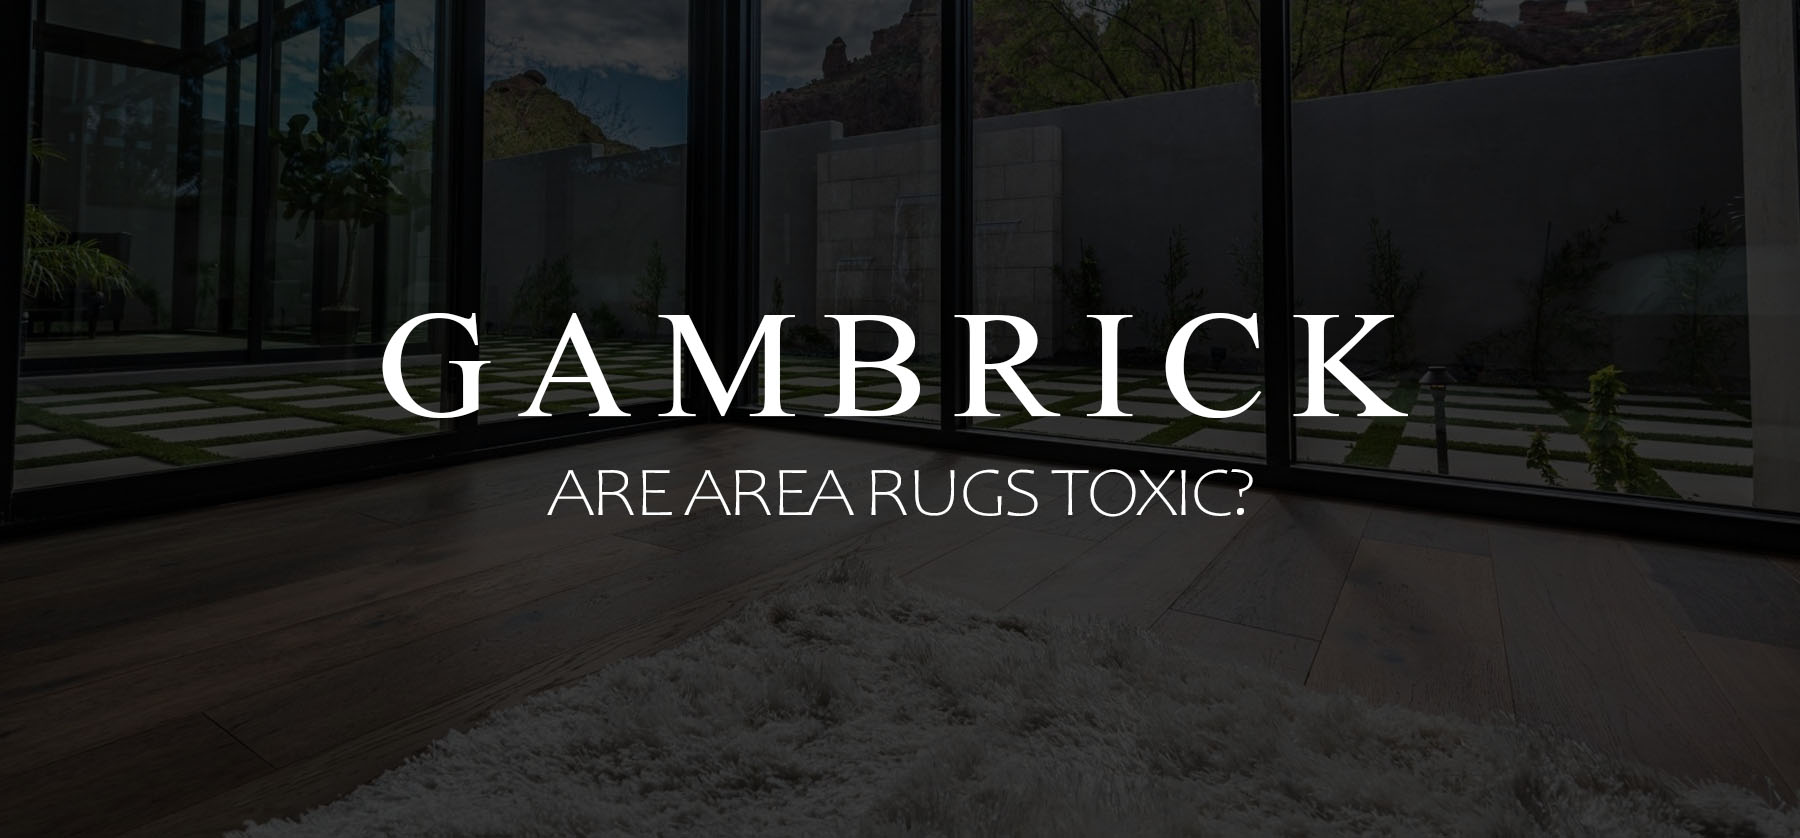 Are Area Rugs Toxic banner picture